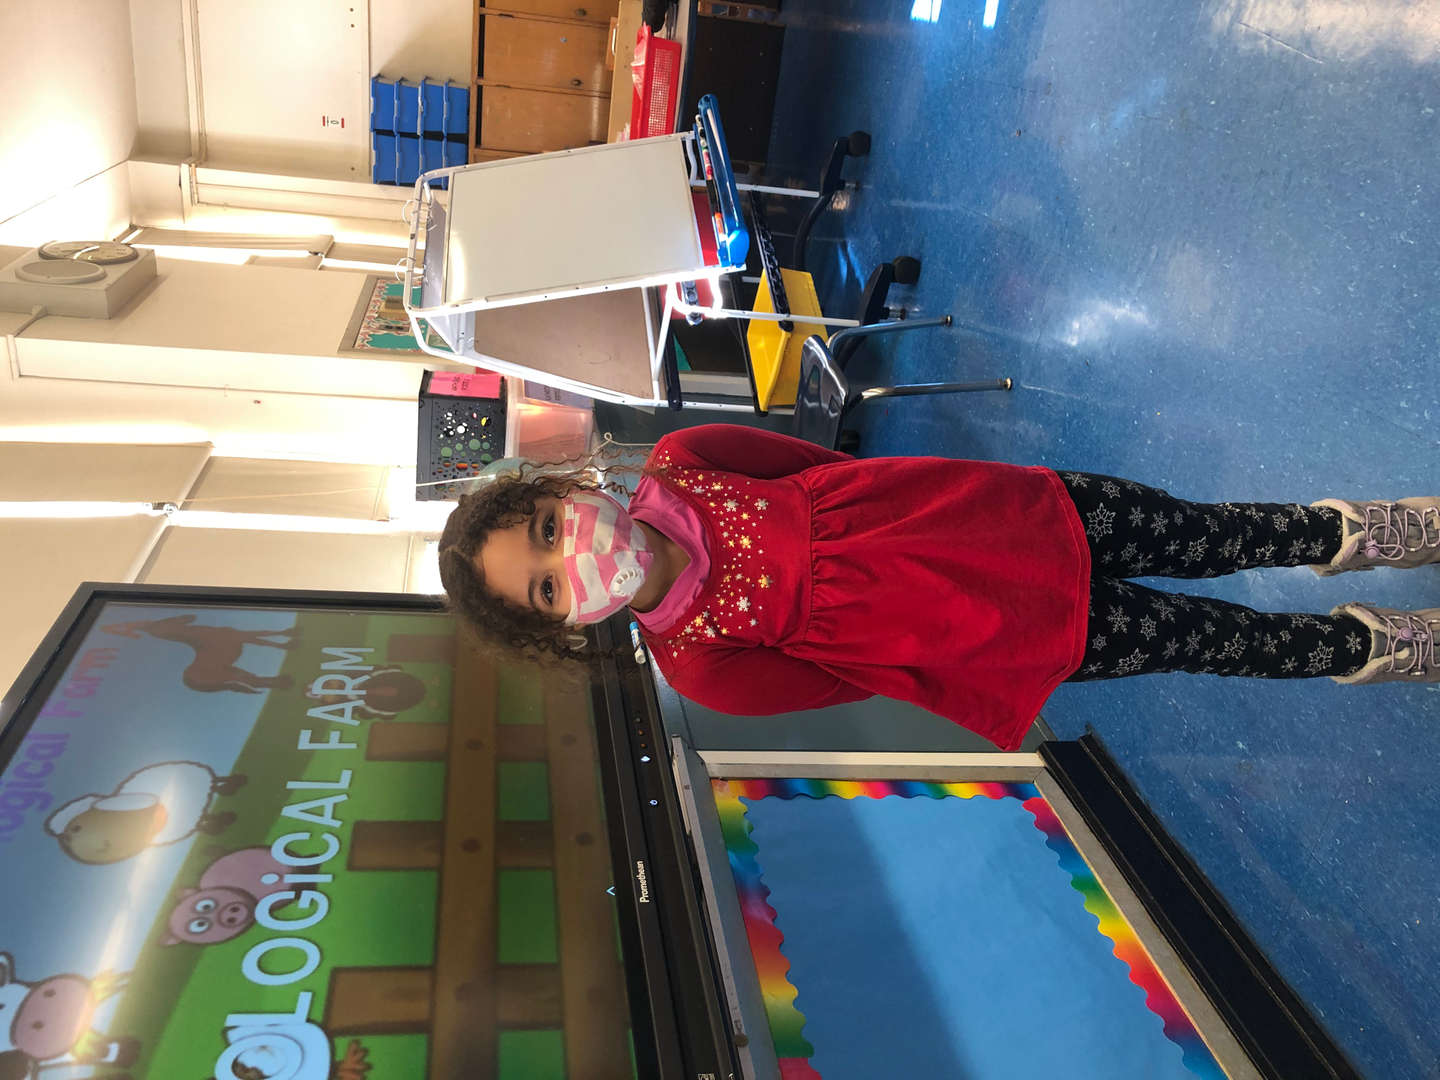 student wears red shirt for support day